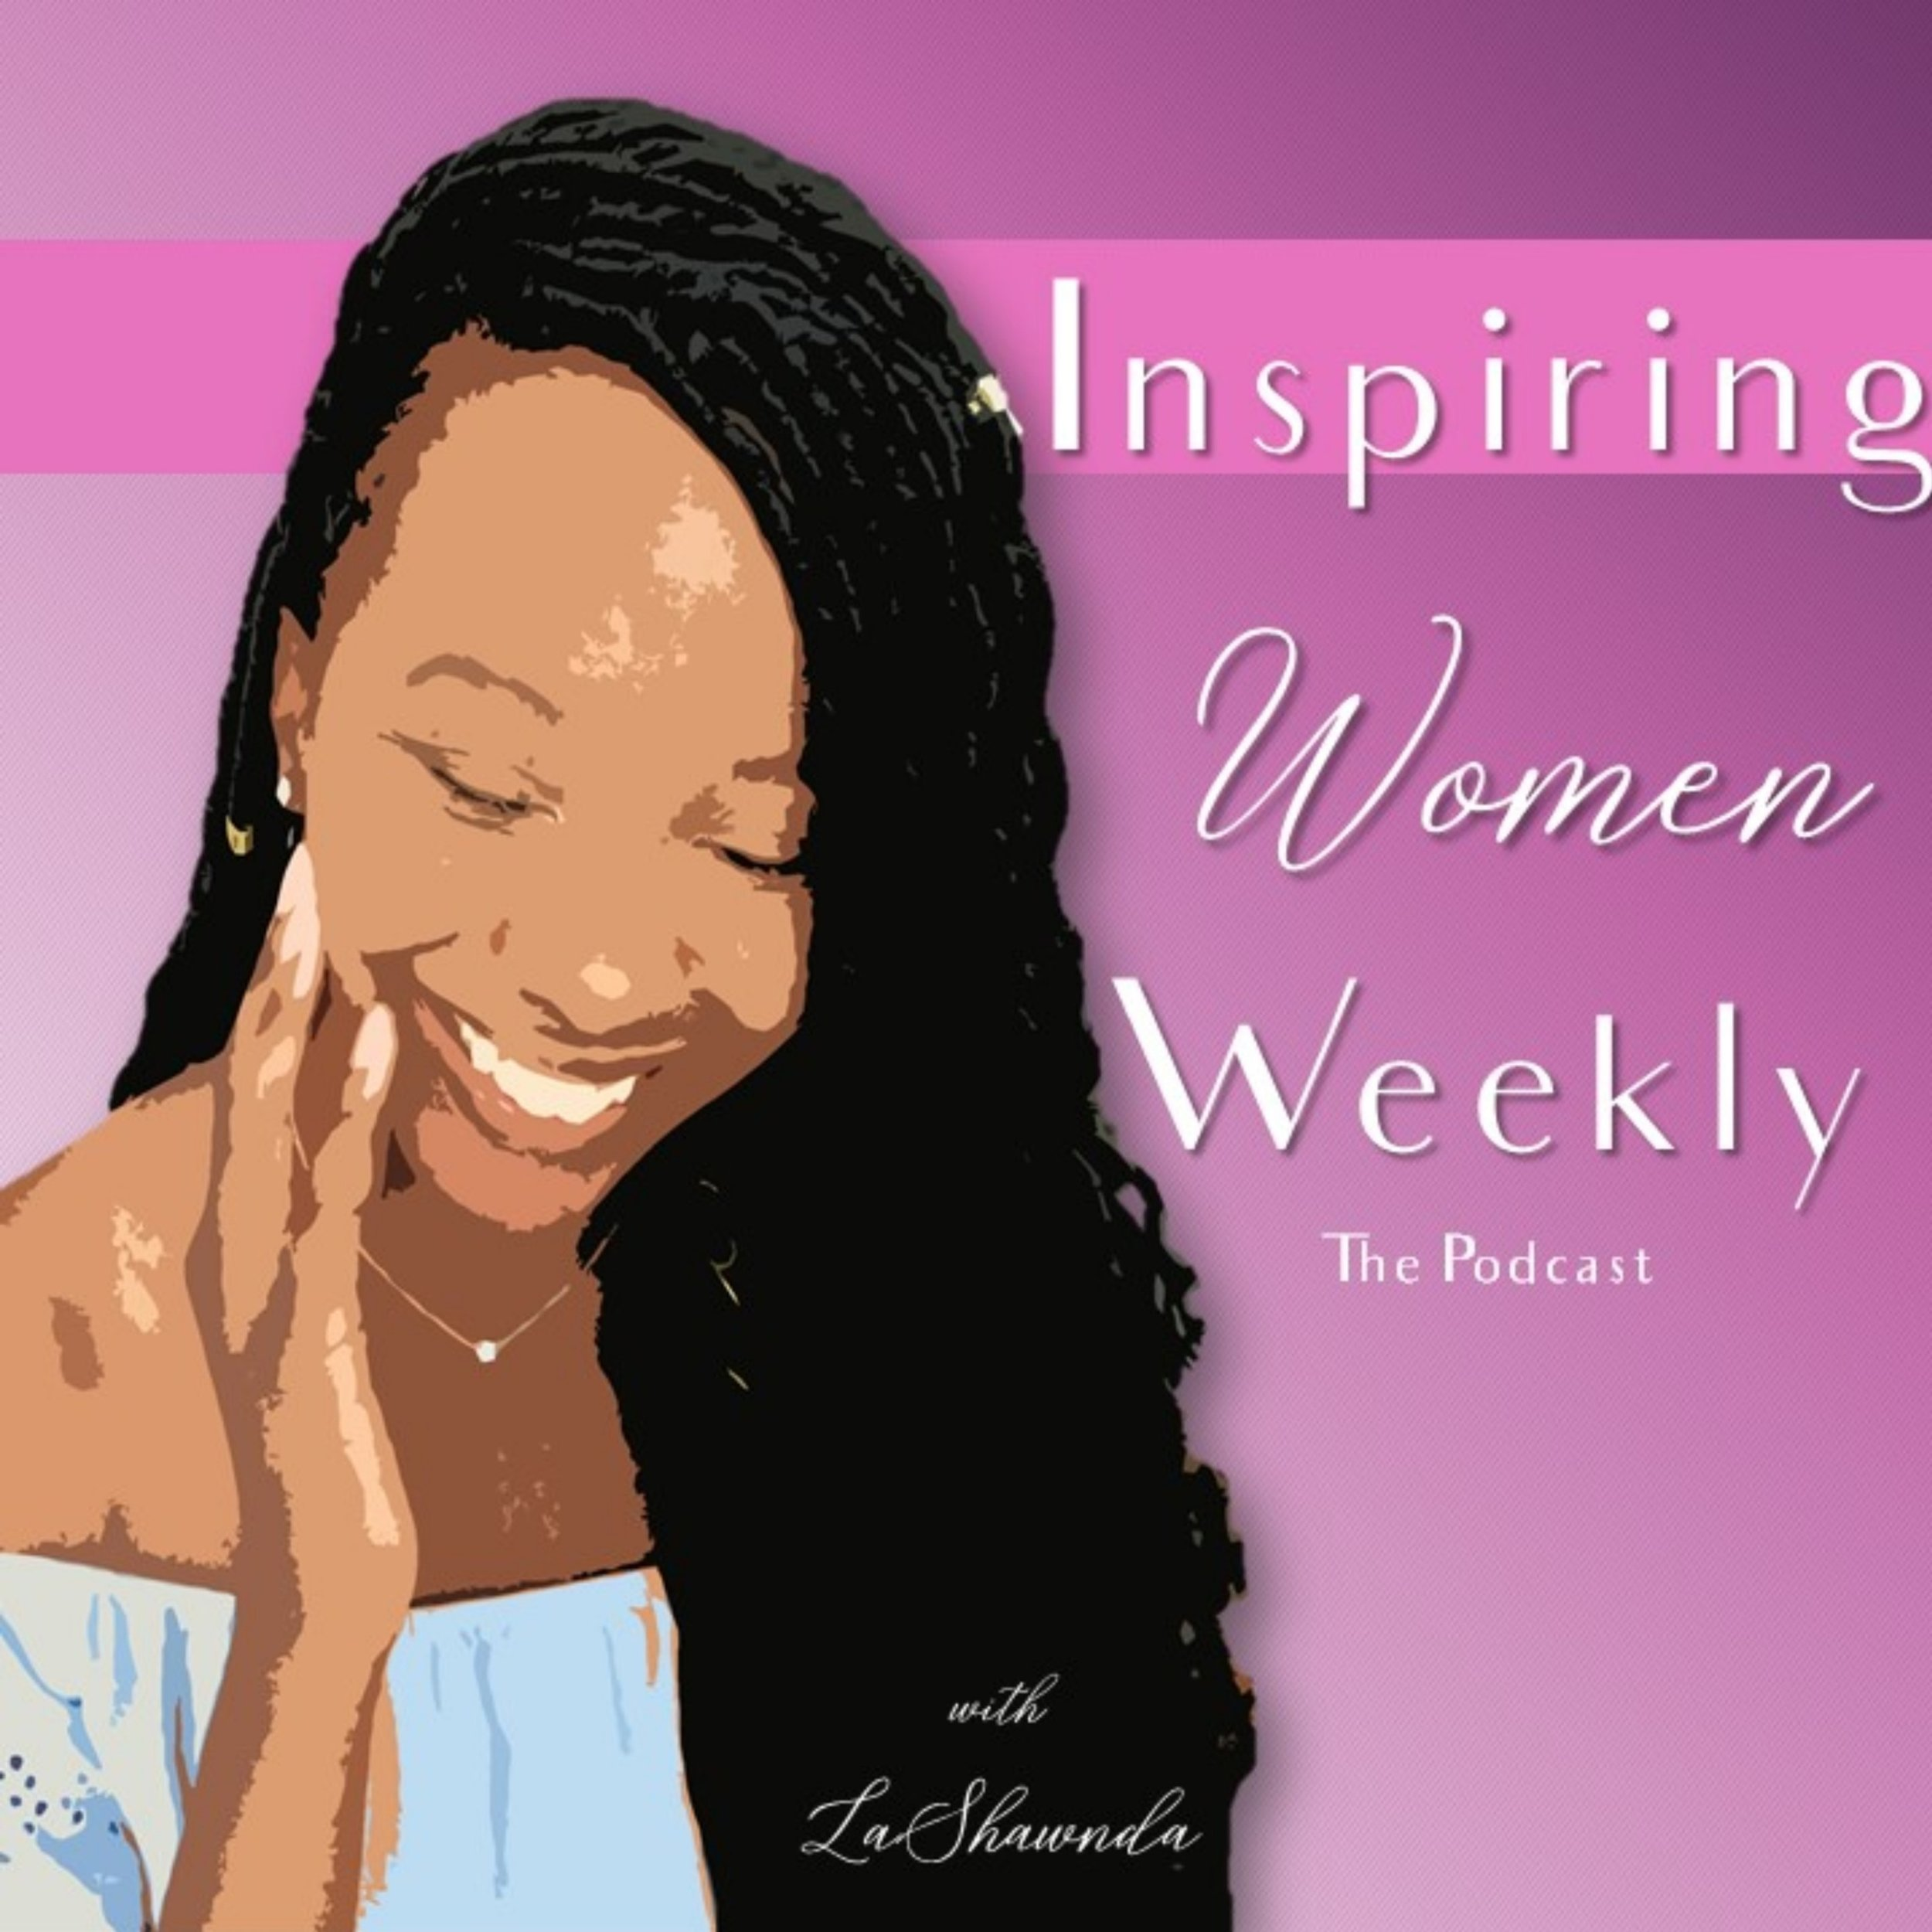 The Podcast - Listen to the Inspiring Women Weekly Podcast where I share my stories to encourage women to go further, push harder, and shine brighter!